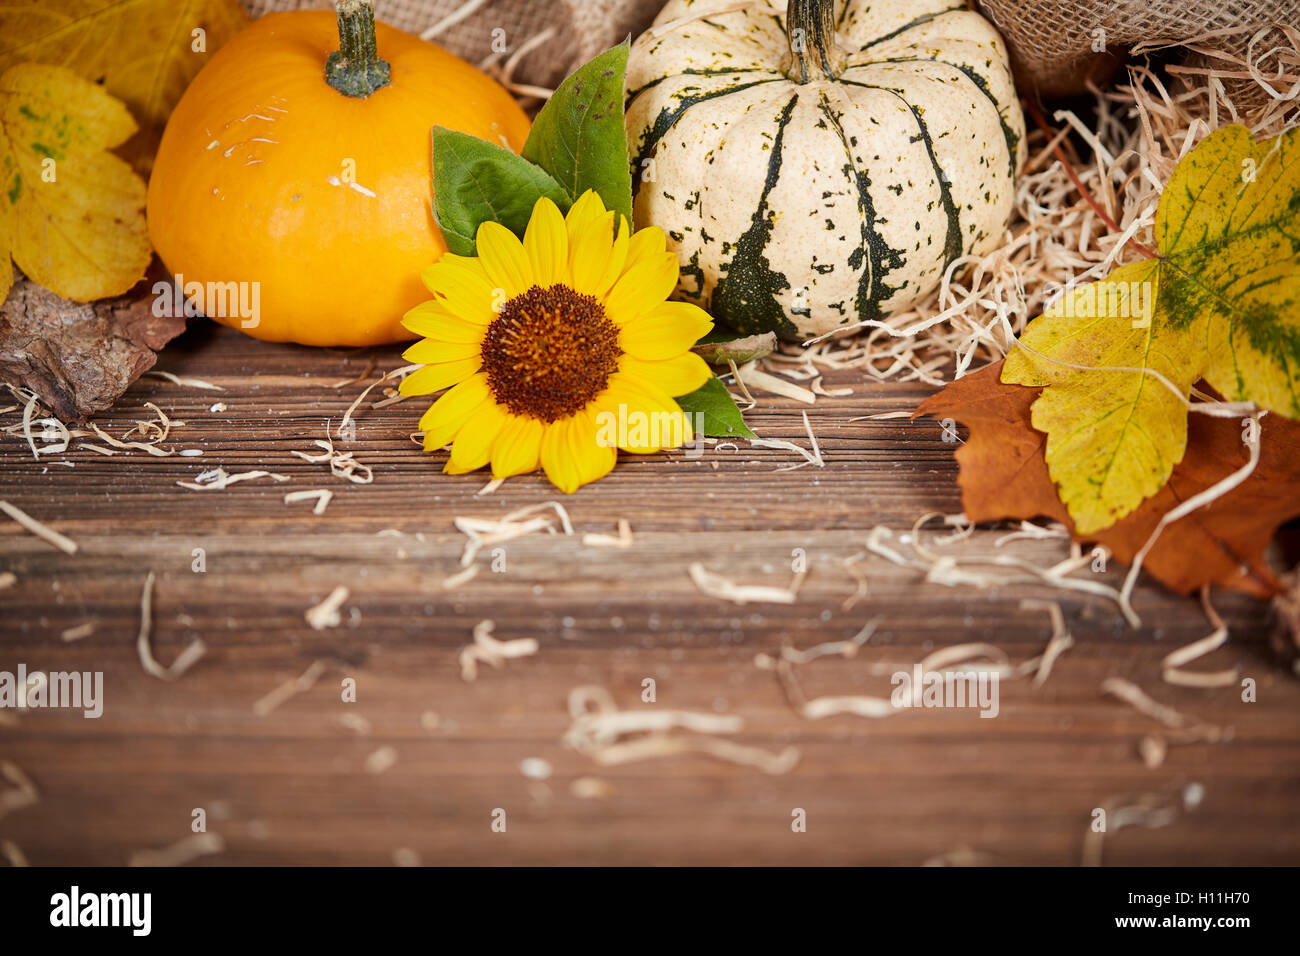 Thanksgiving background with pumpkins, leaves and sunflower on a brown wooden table - Stock Image